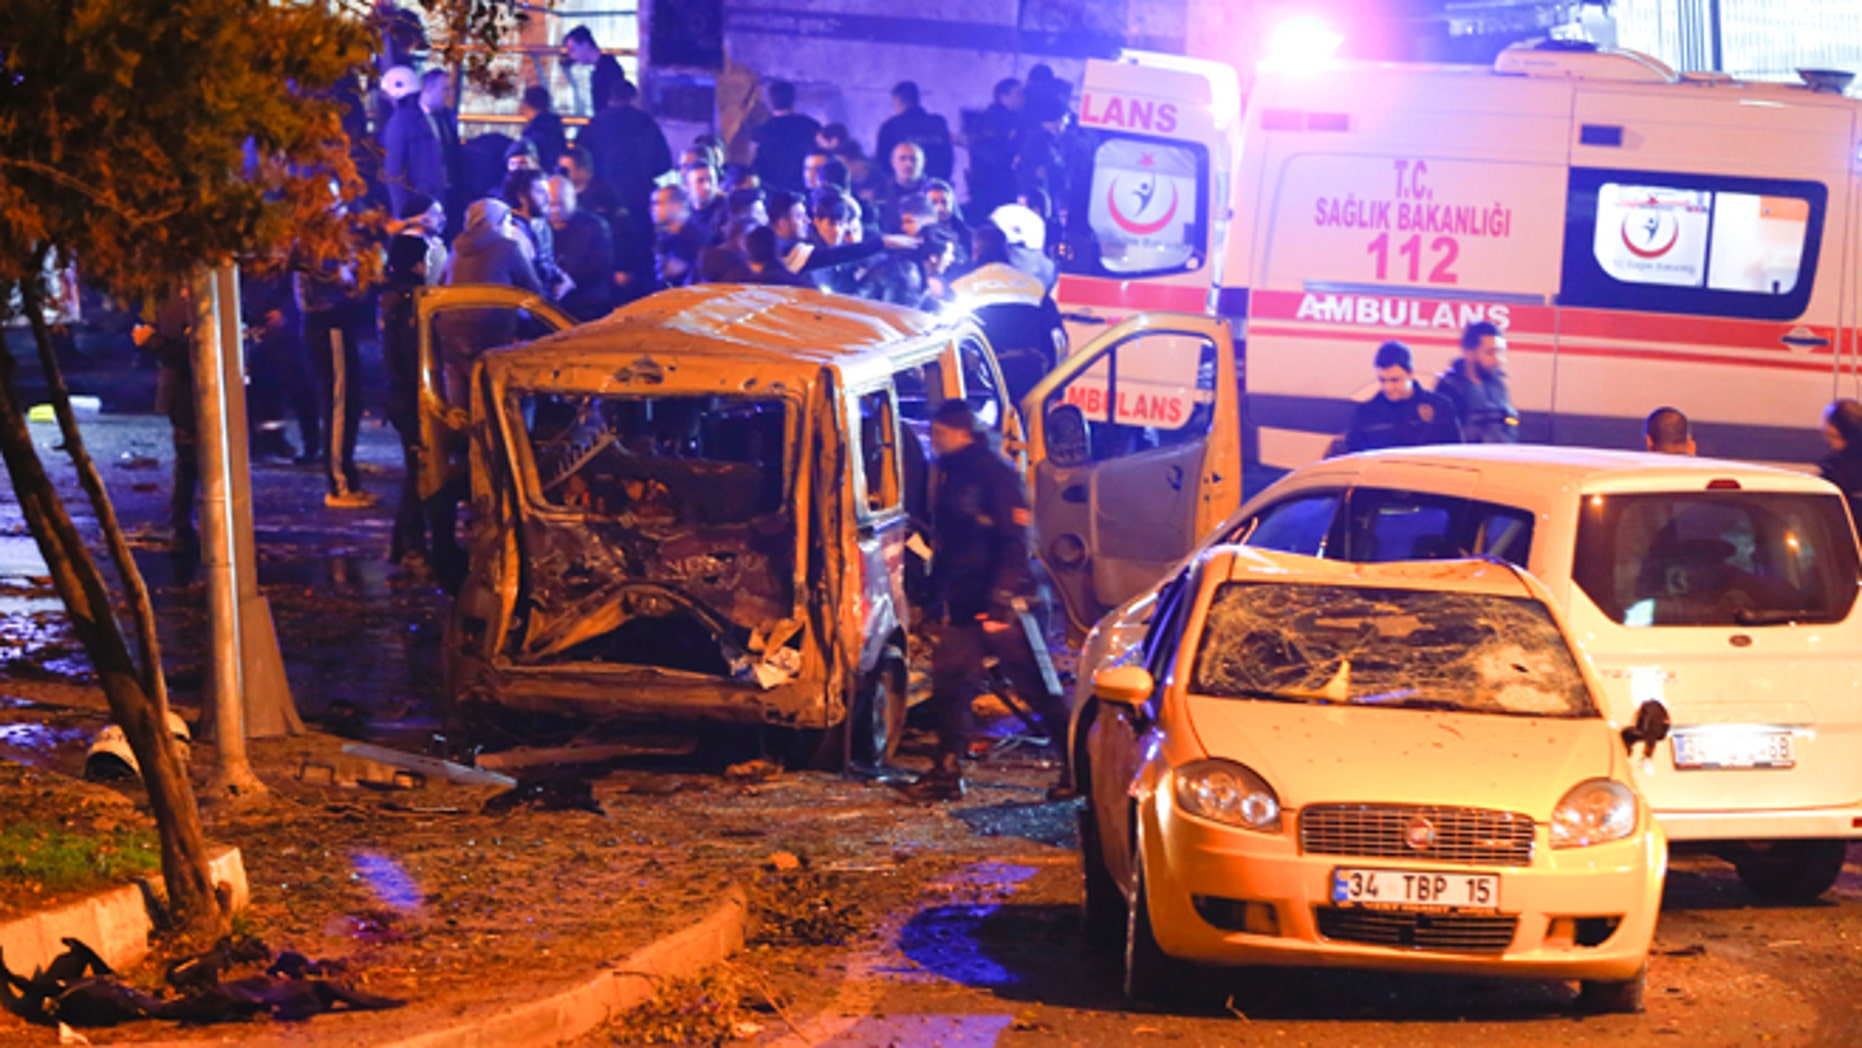 Police arrive at the site of a car bombing attack in Istanbul, Turkey